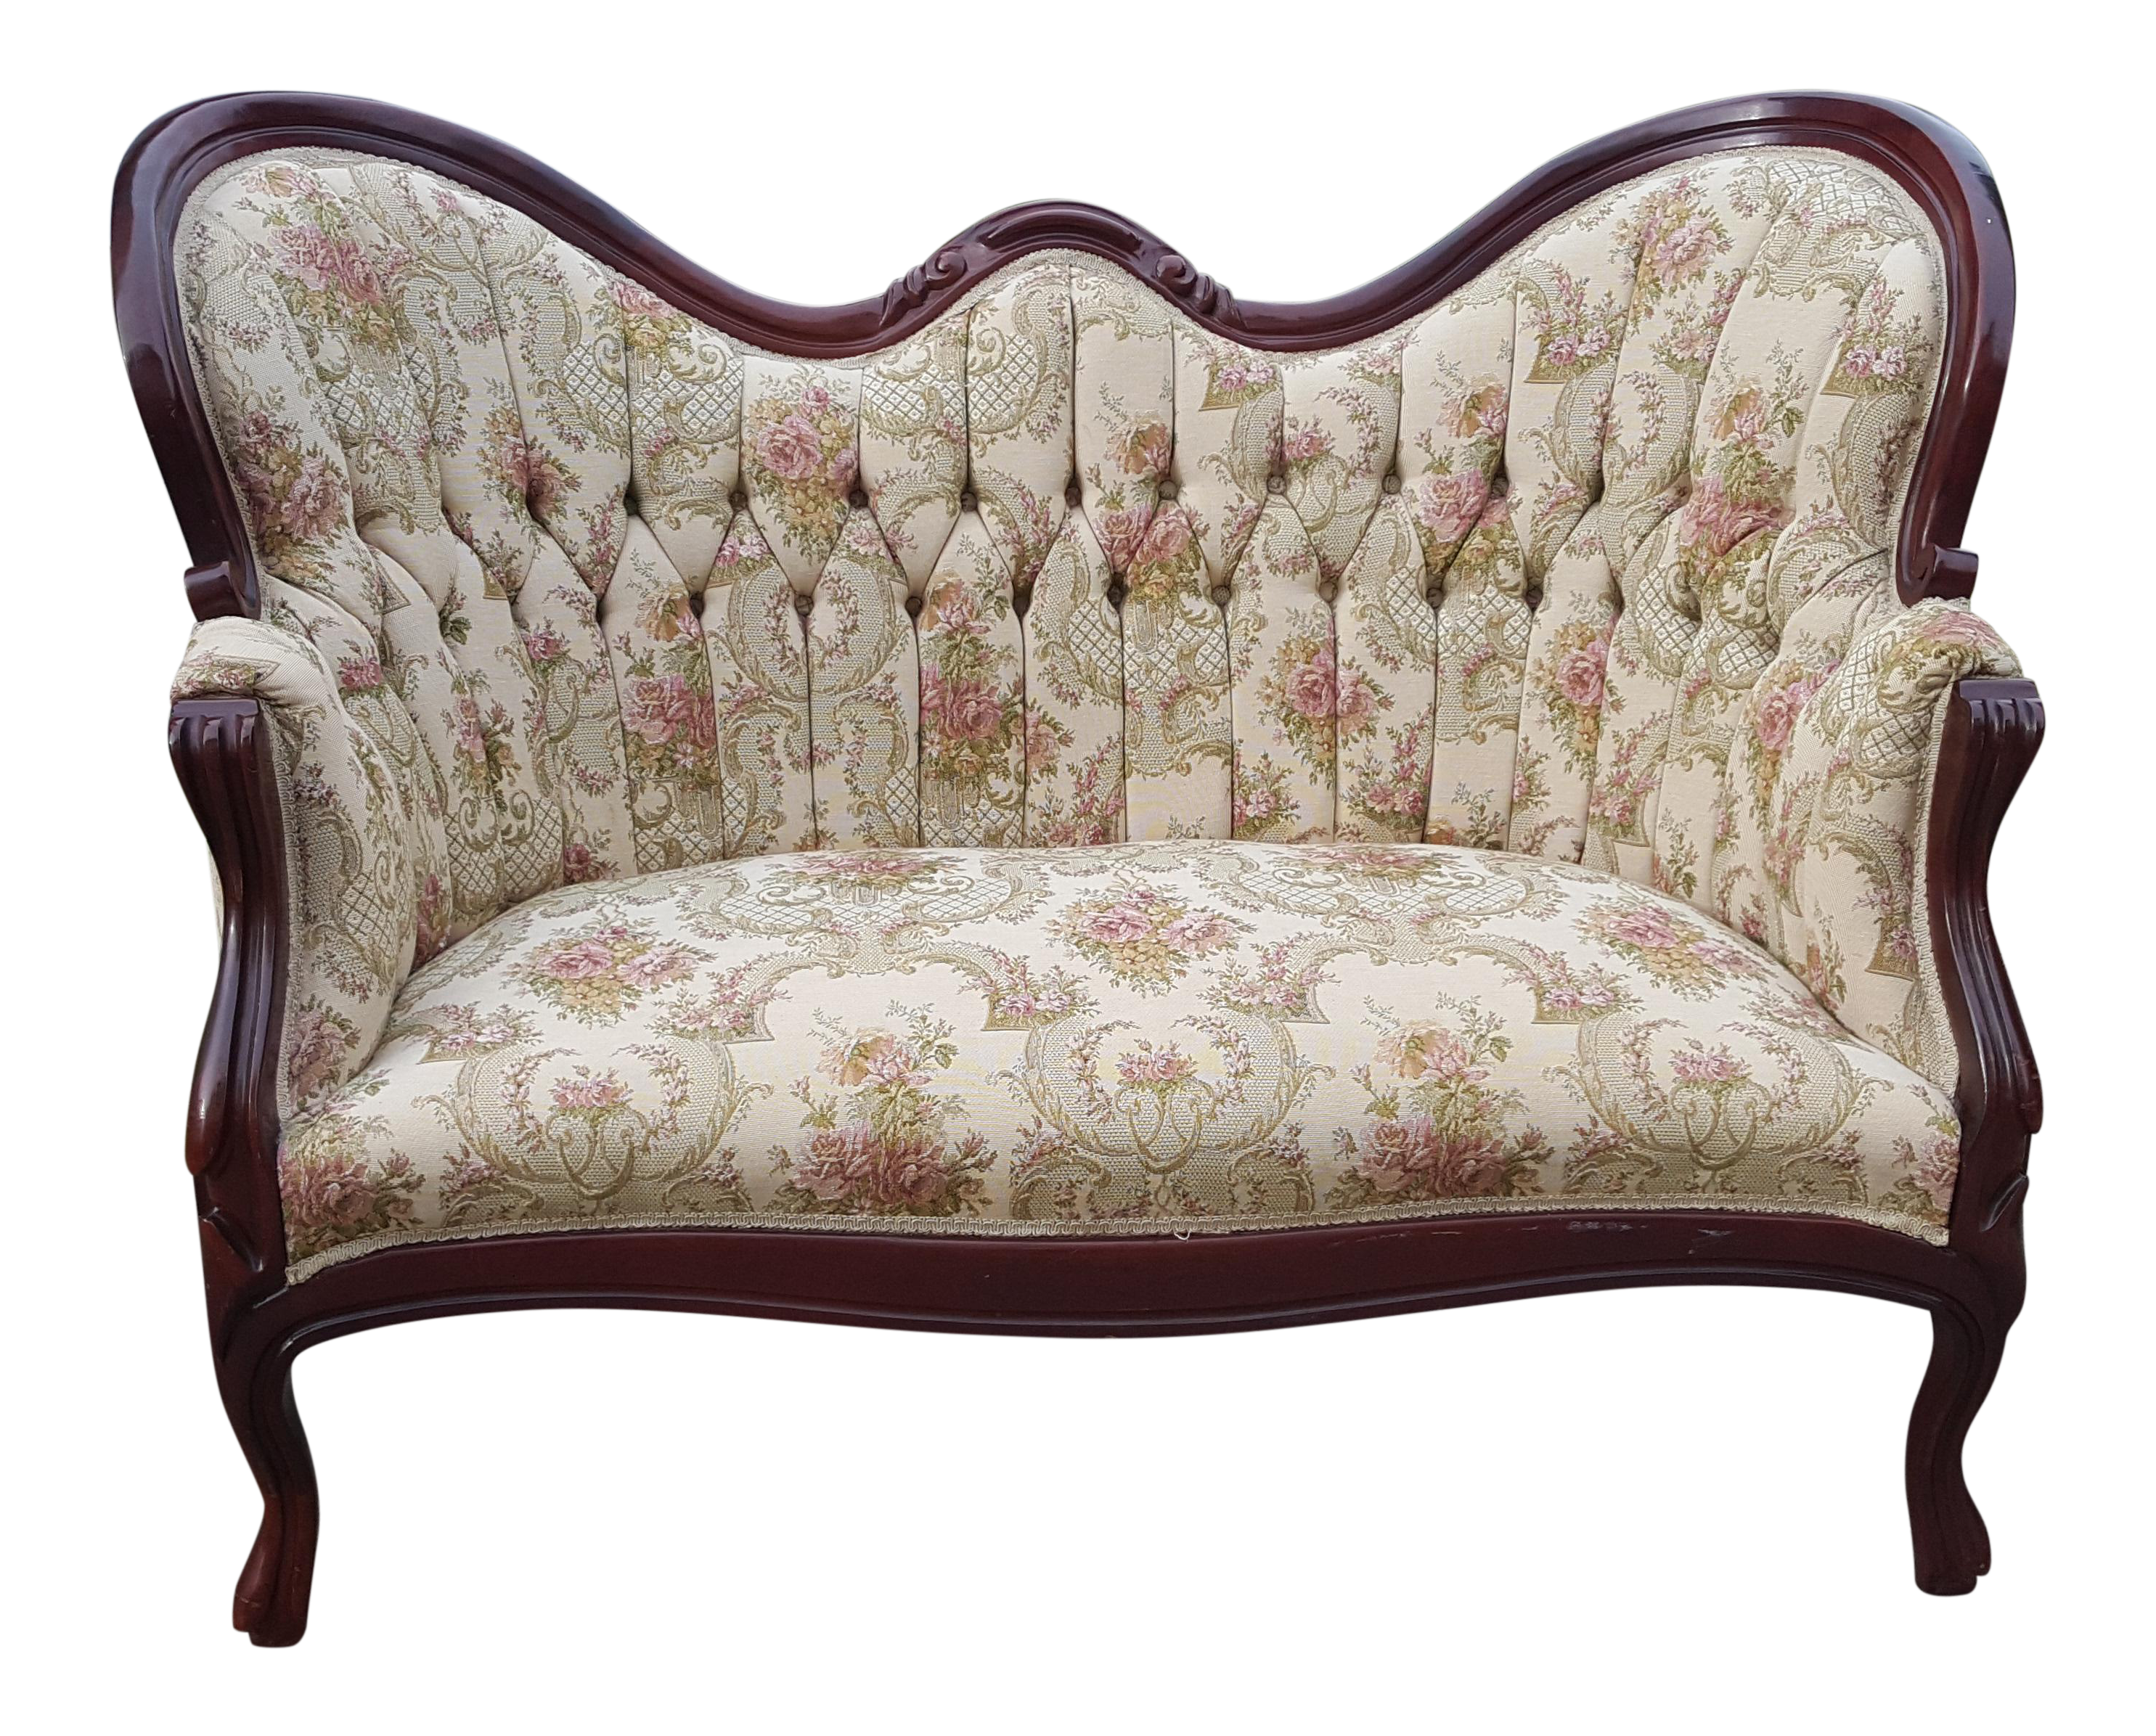 velvet wood kathy mocha product detail loveseat regency silver jane home kuo tufted hollywood